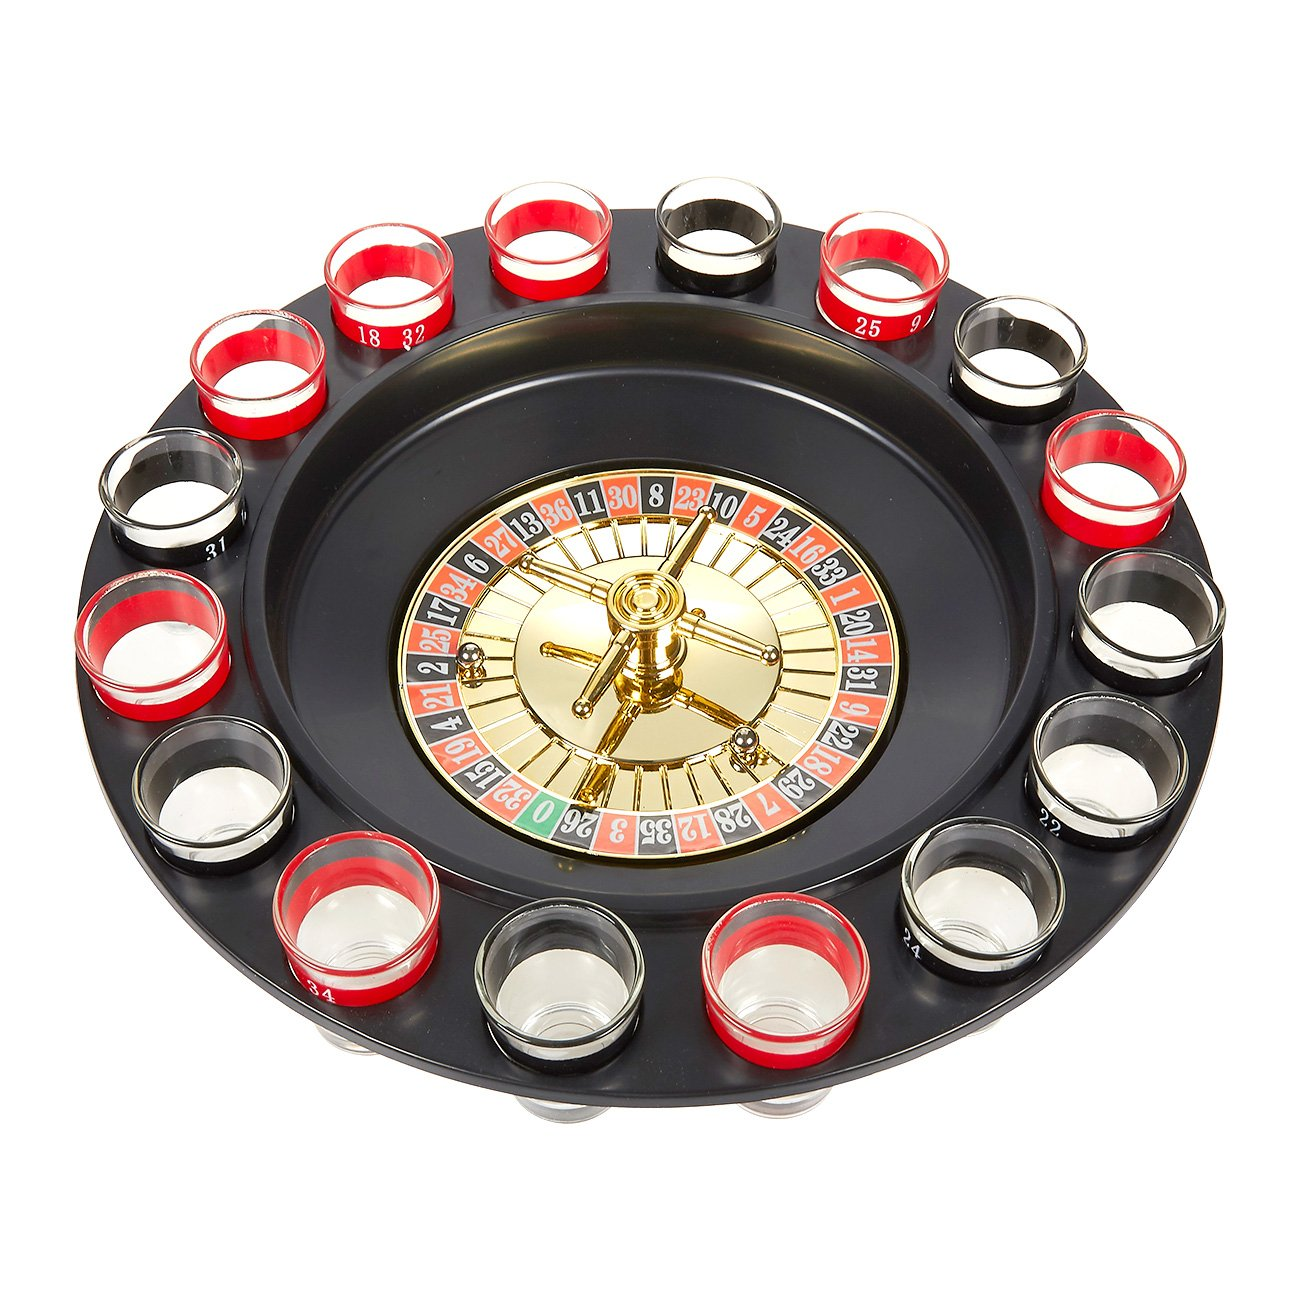 Shot Roulette Drinking Game - Includes Roulette Wheel, Shot Glasses, Roulette Balls and Starting Guide Juvale